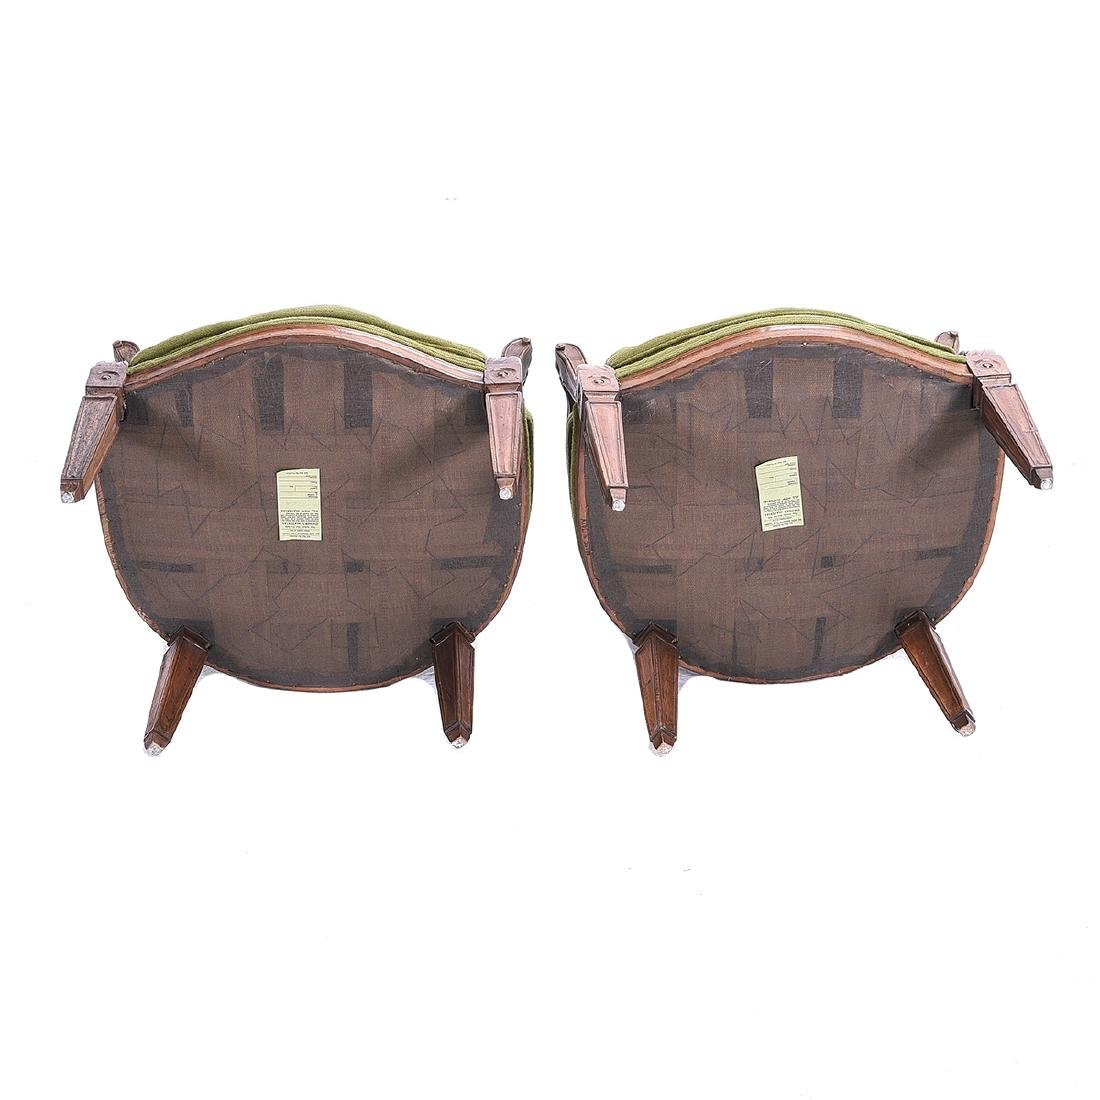 Pair French Provincial Walnut Fauteuils, with Green - 4